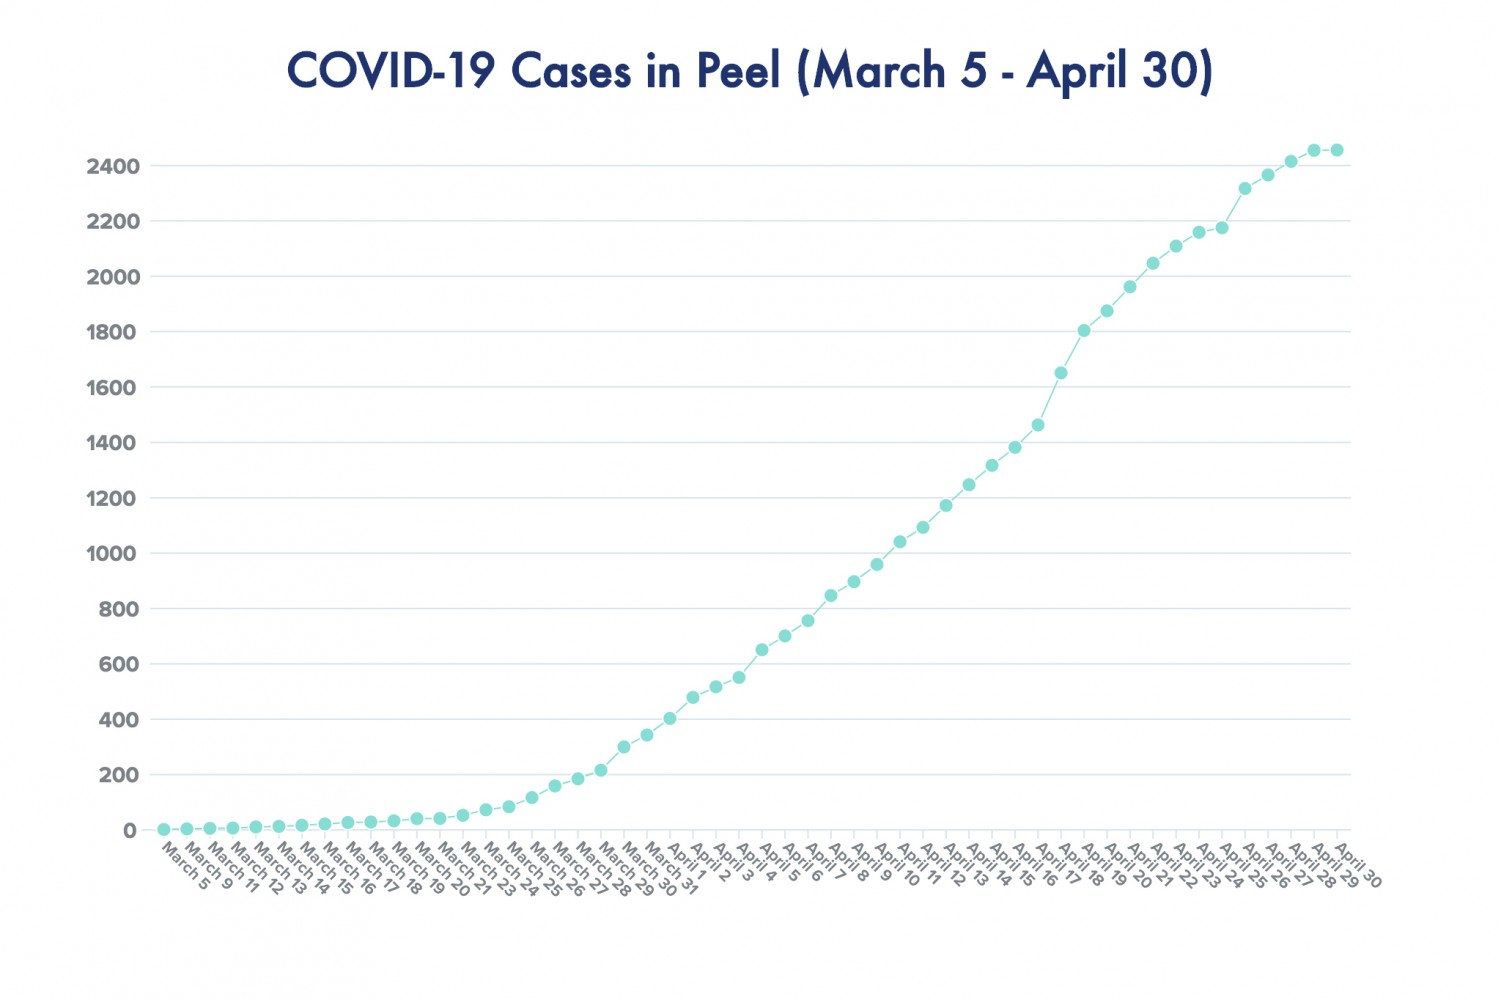 Only one new case of COVID-19 reported in Peel over 24-hour period, but don't go running out the door yet